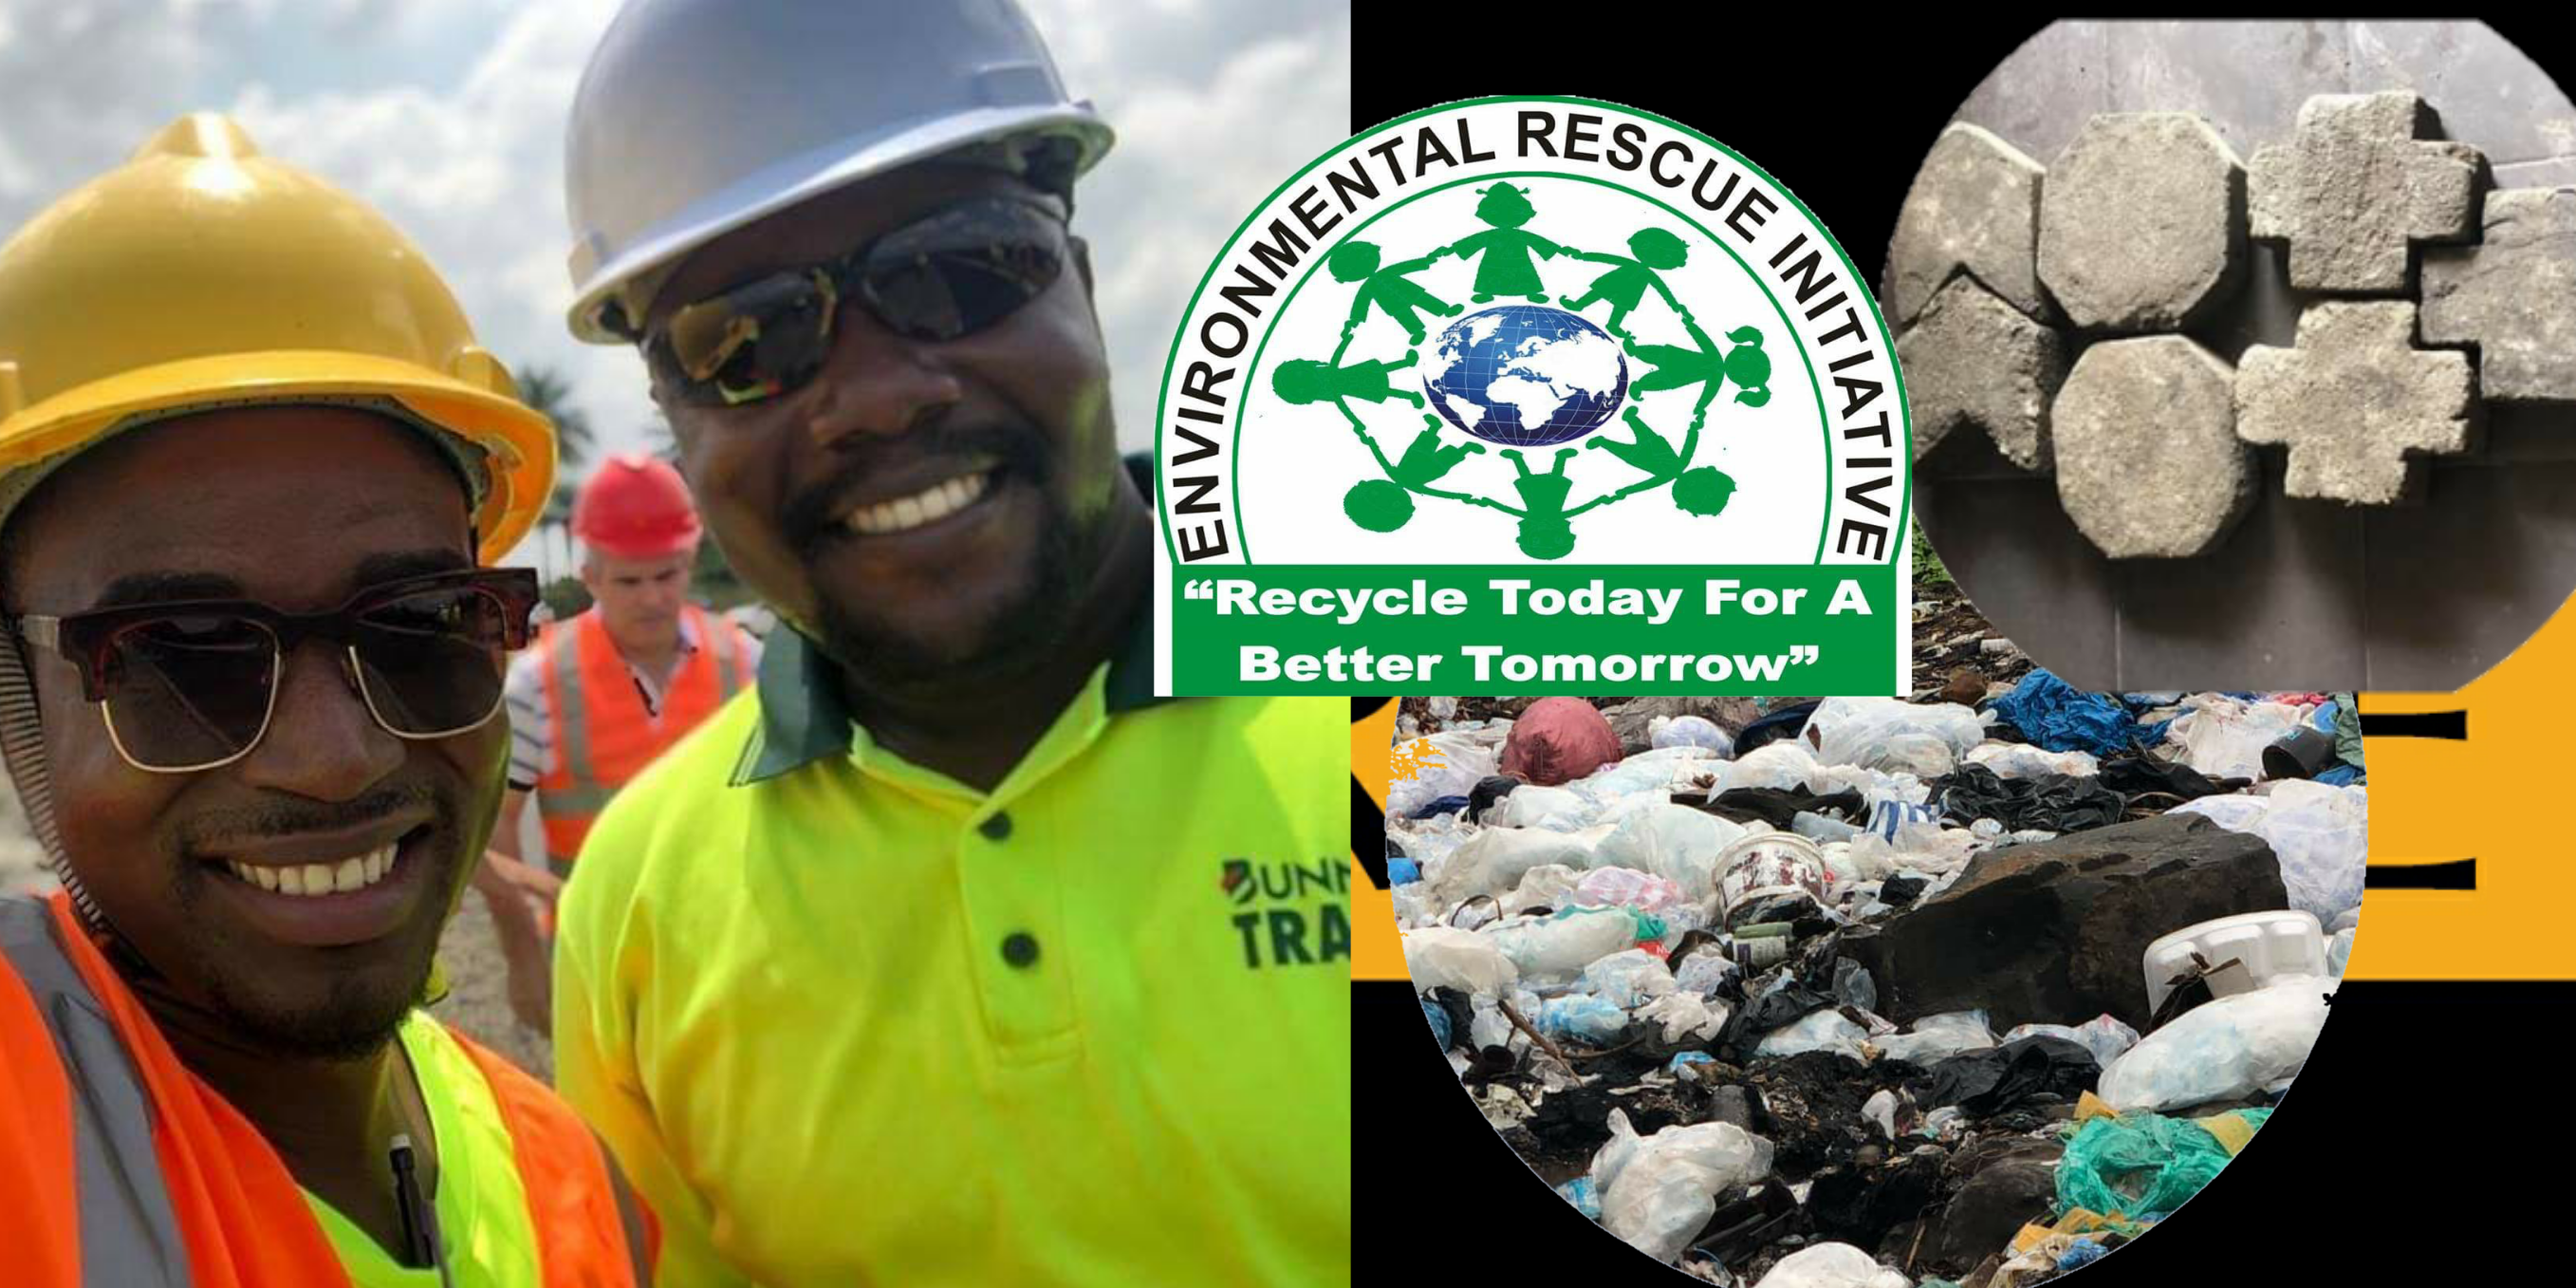 Project of recycling plastic waste into bricks in Liberia